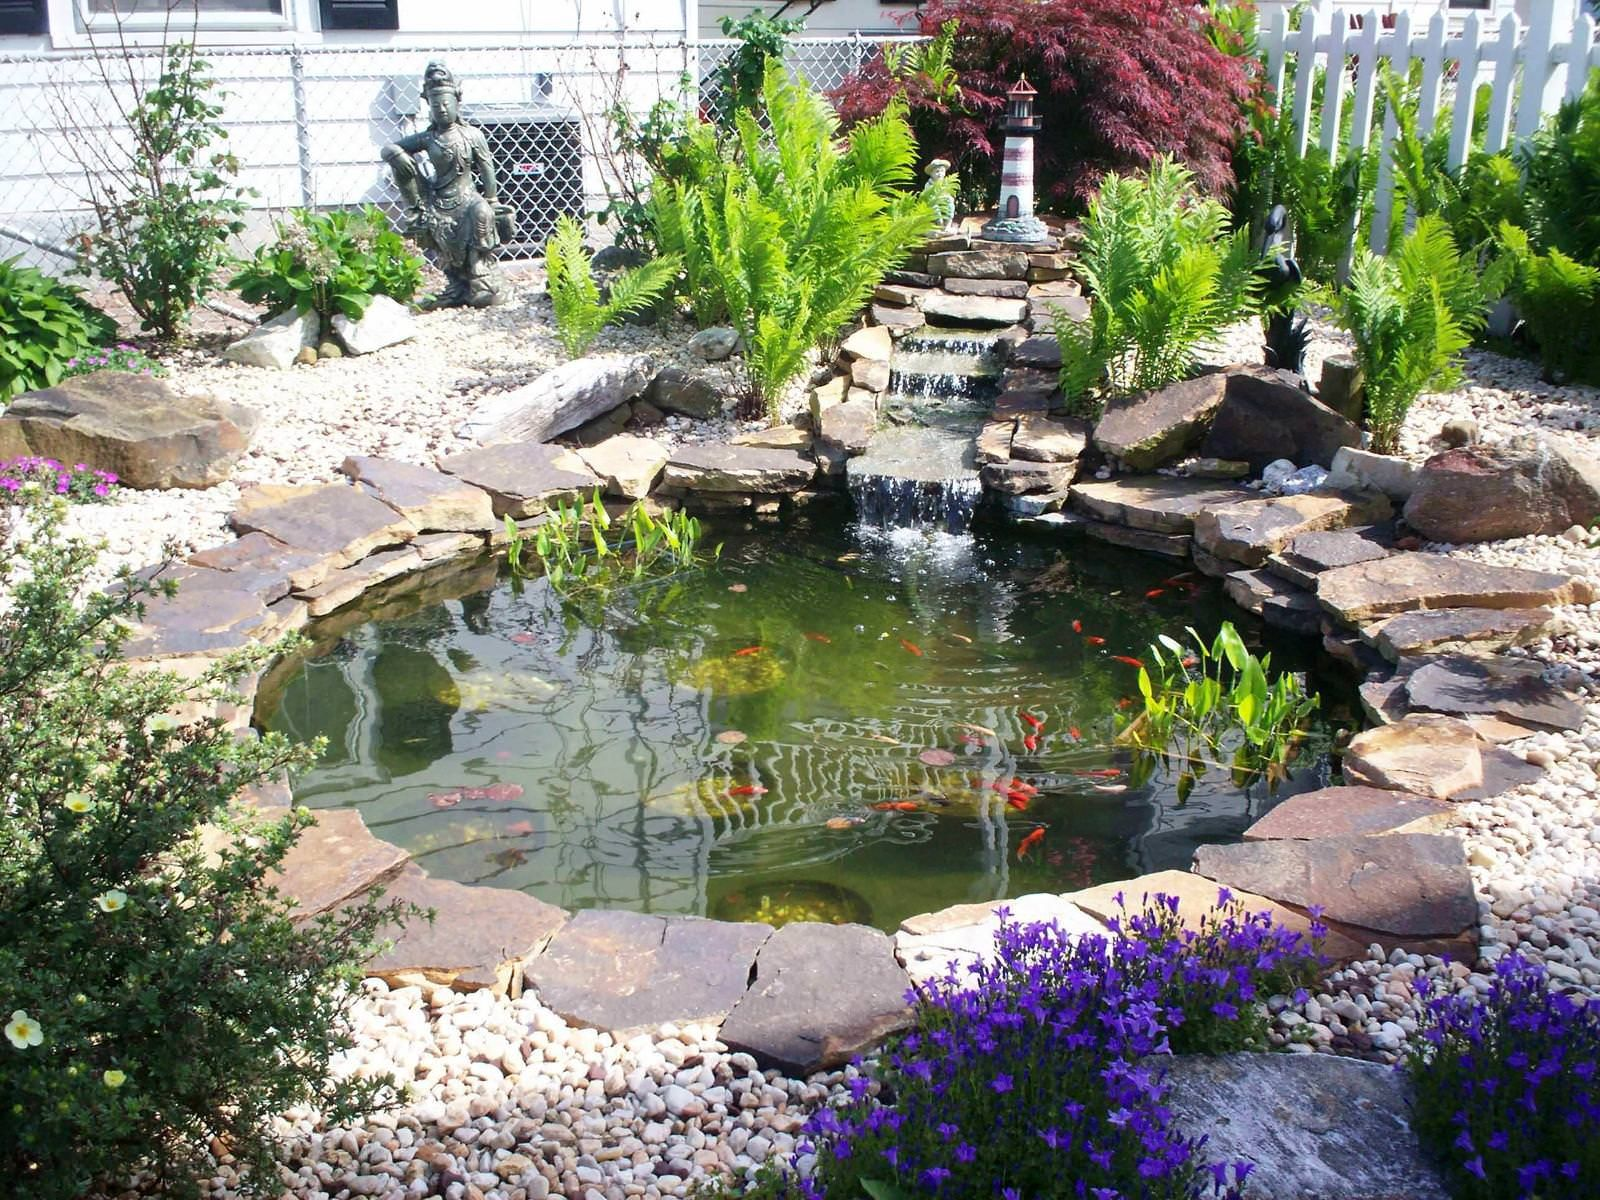 Small garden or backyard aquarium ideas practic ideas for Best pond design